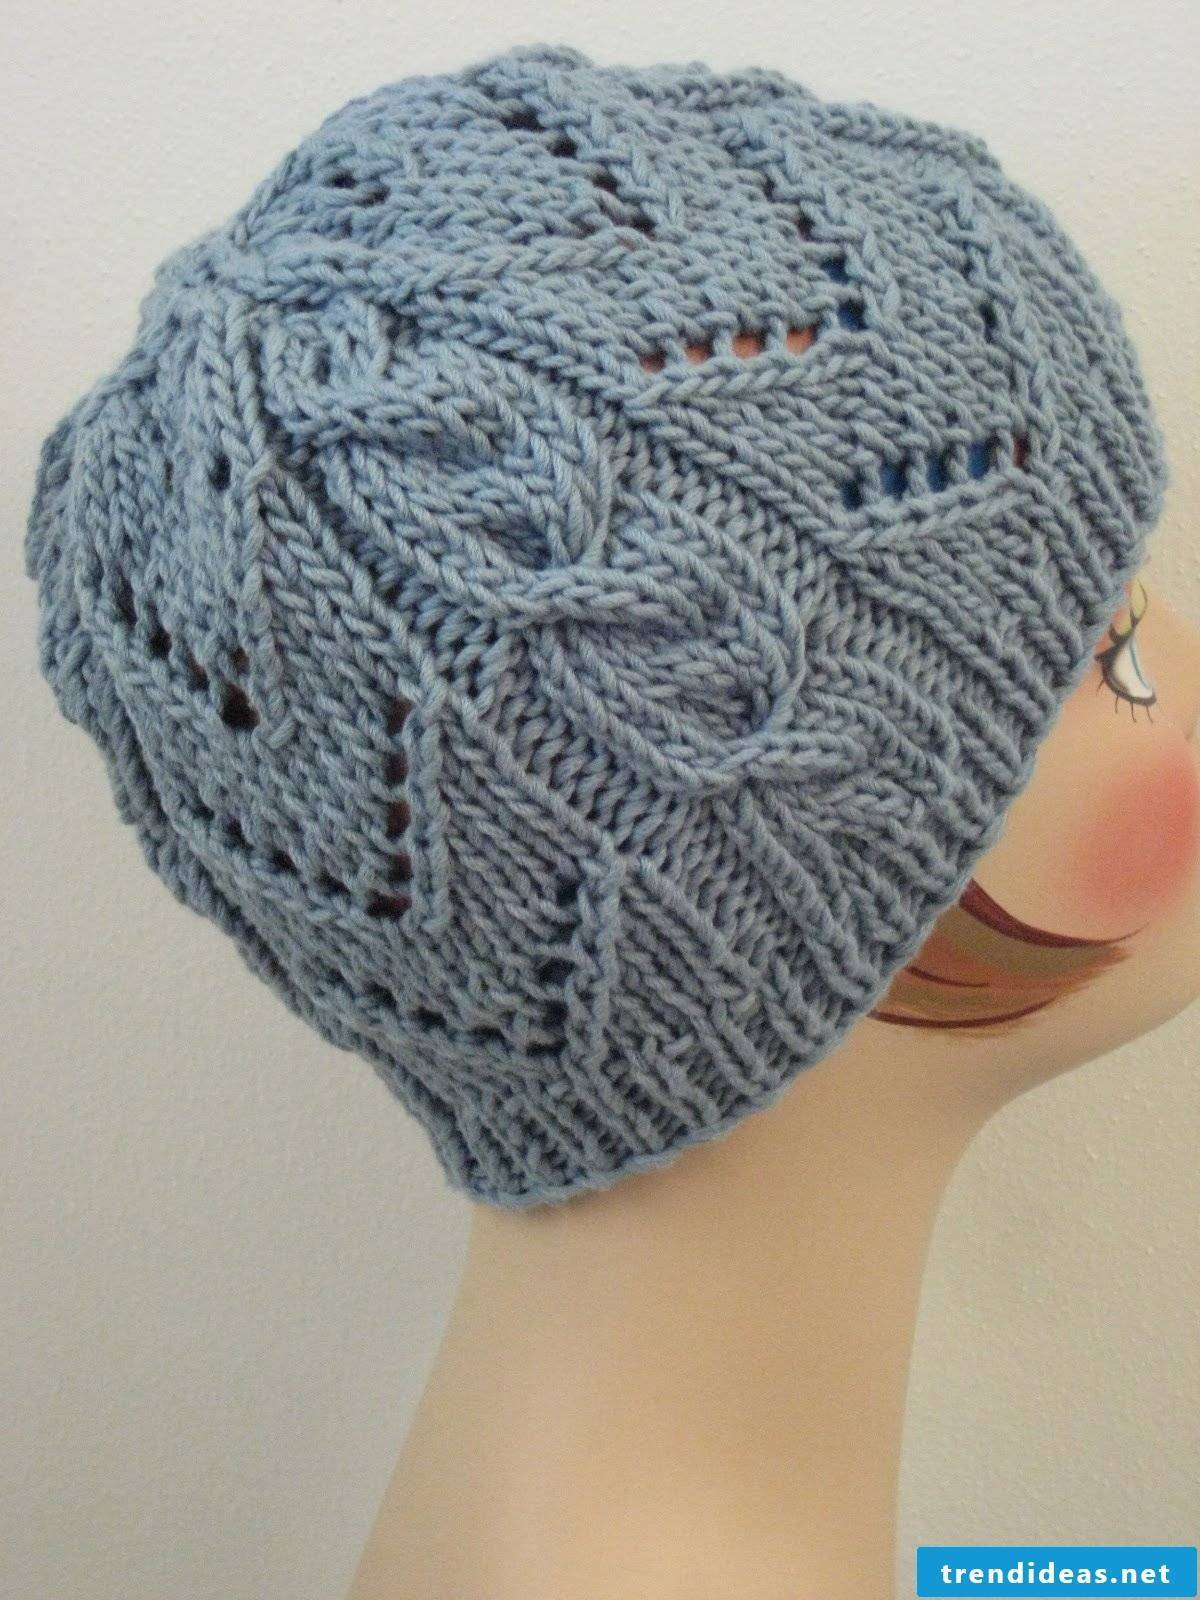 Knitting or crocheting - anyone with the right instructions